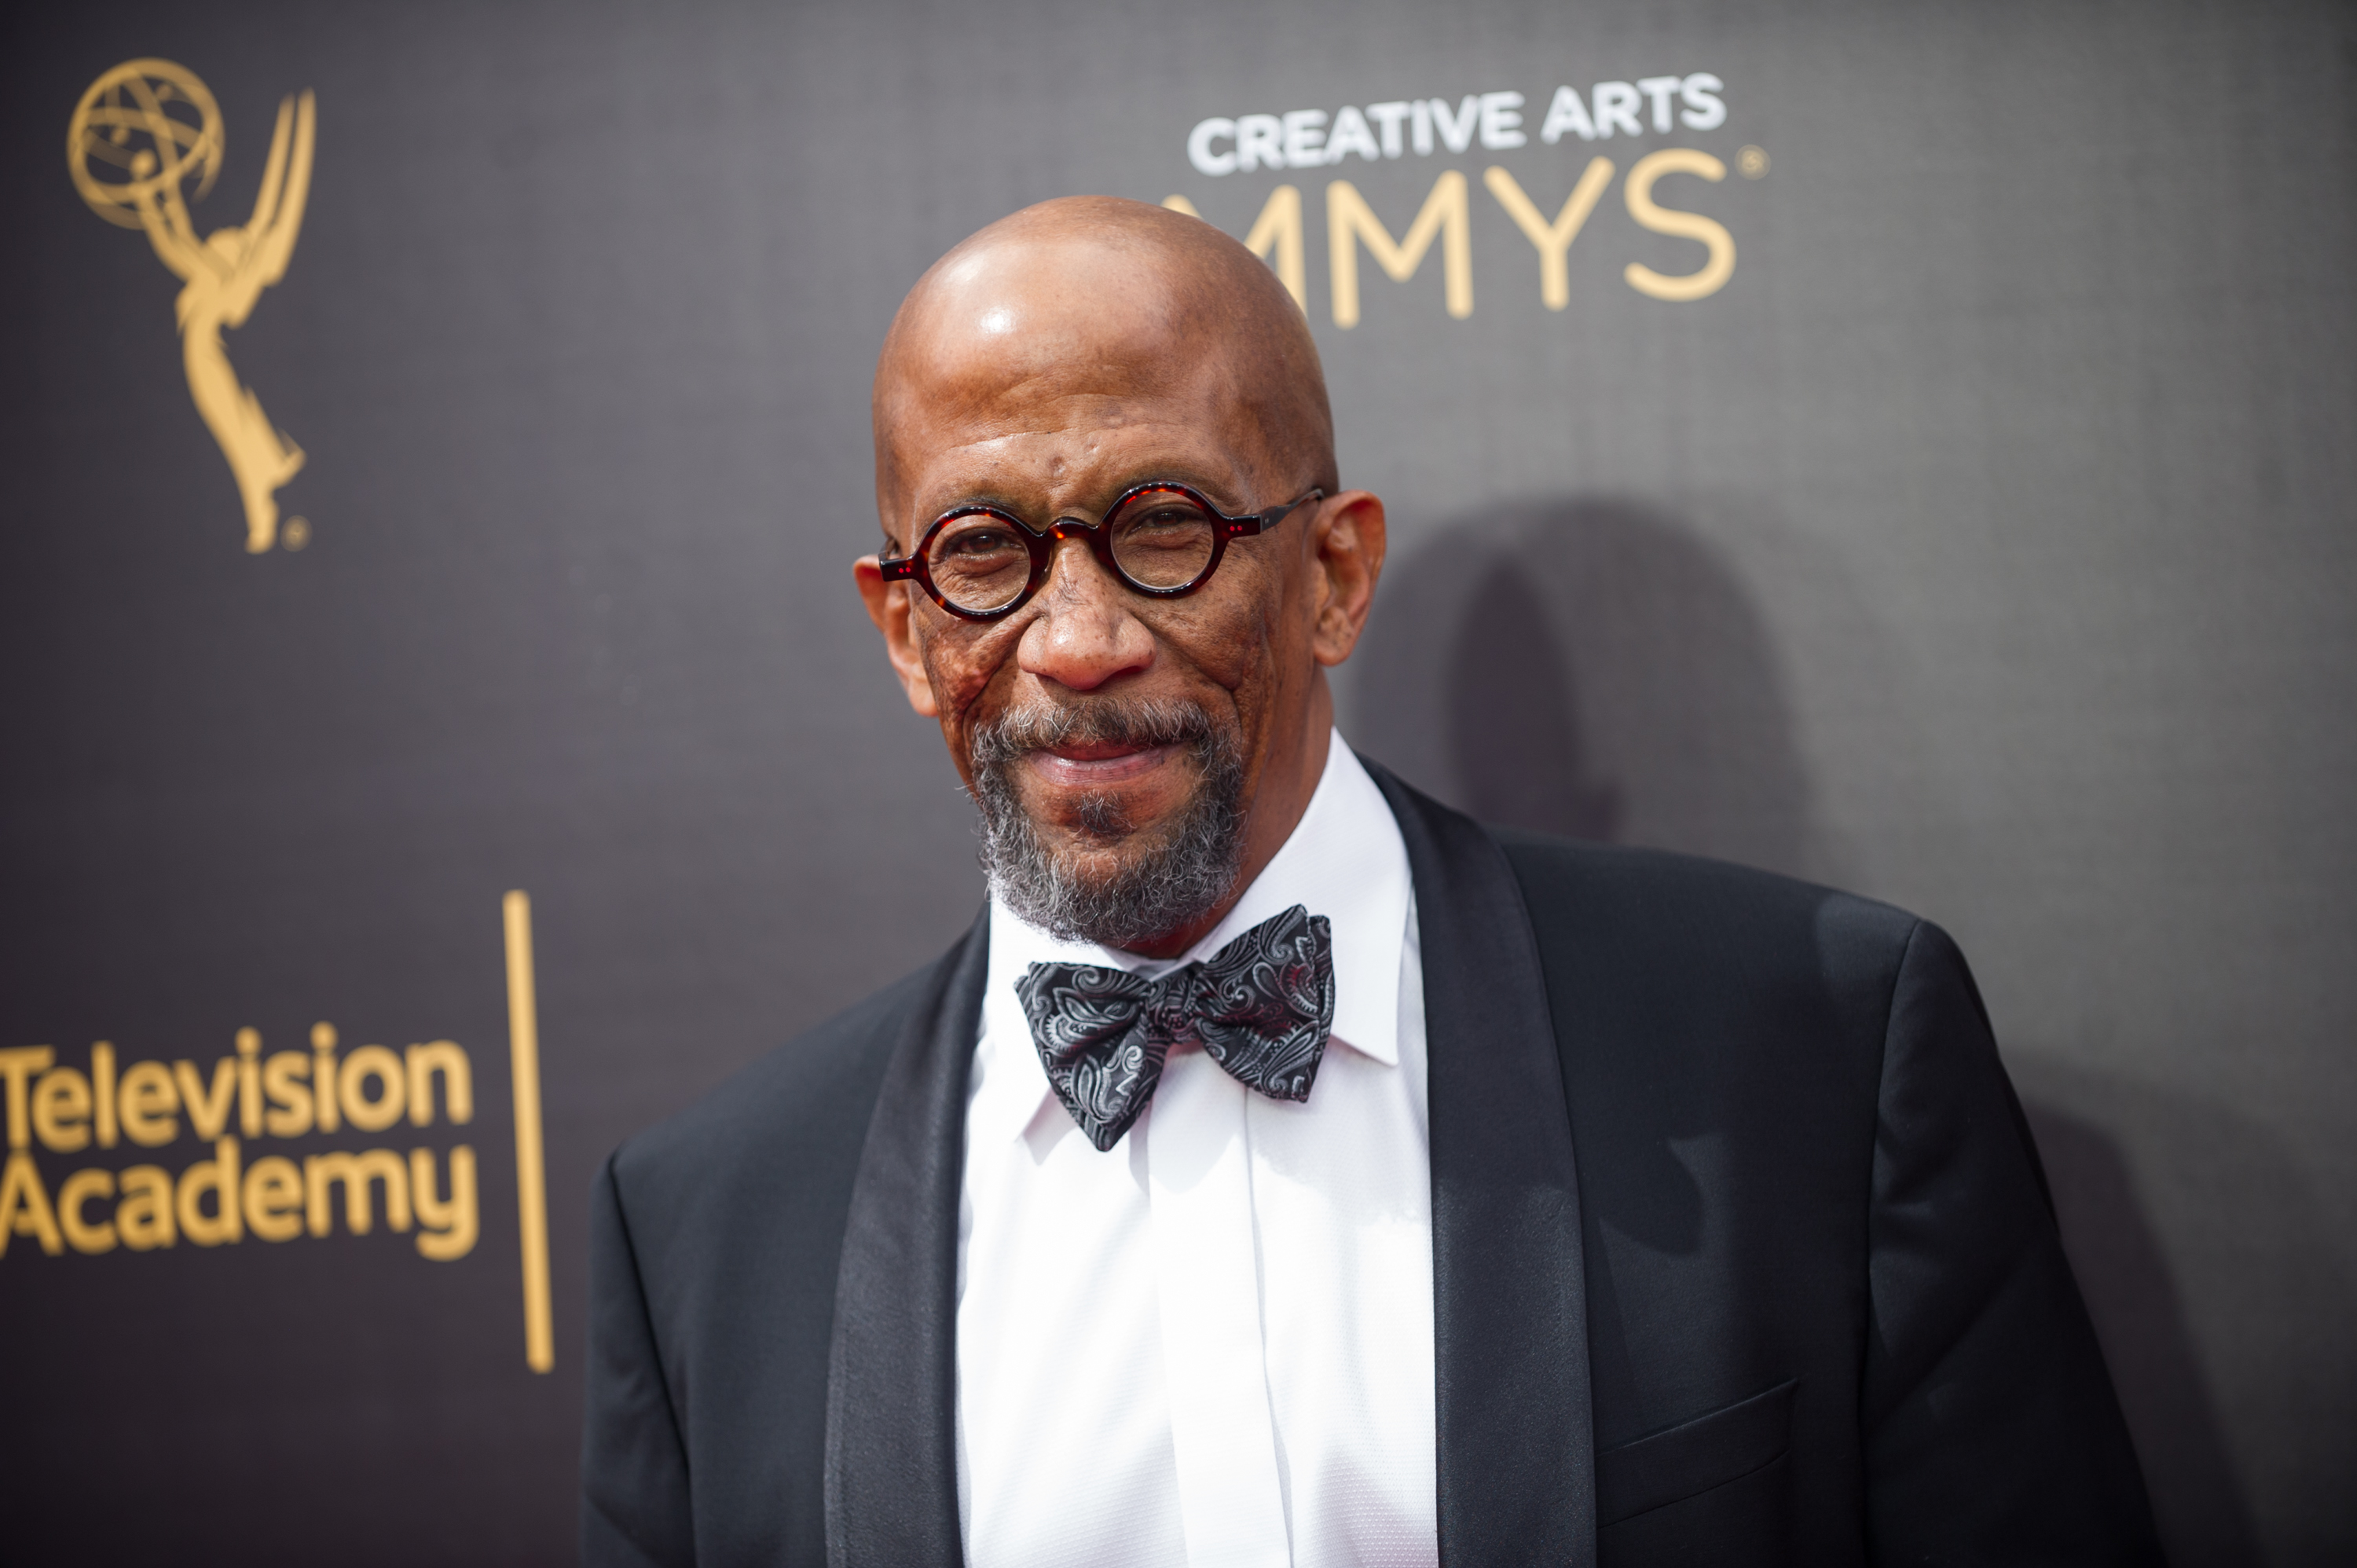 Actor Reg E. Cathey arrives at the Creative Arts Emmy Awards at Microsoft Theater on September 10, 2016 in Los Angeles, California.